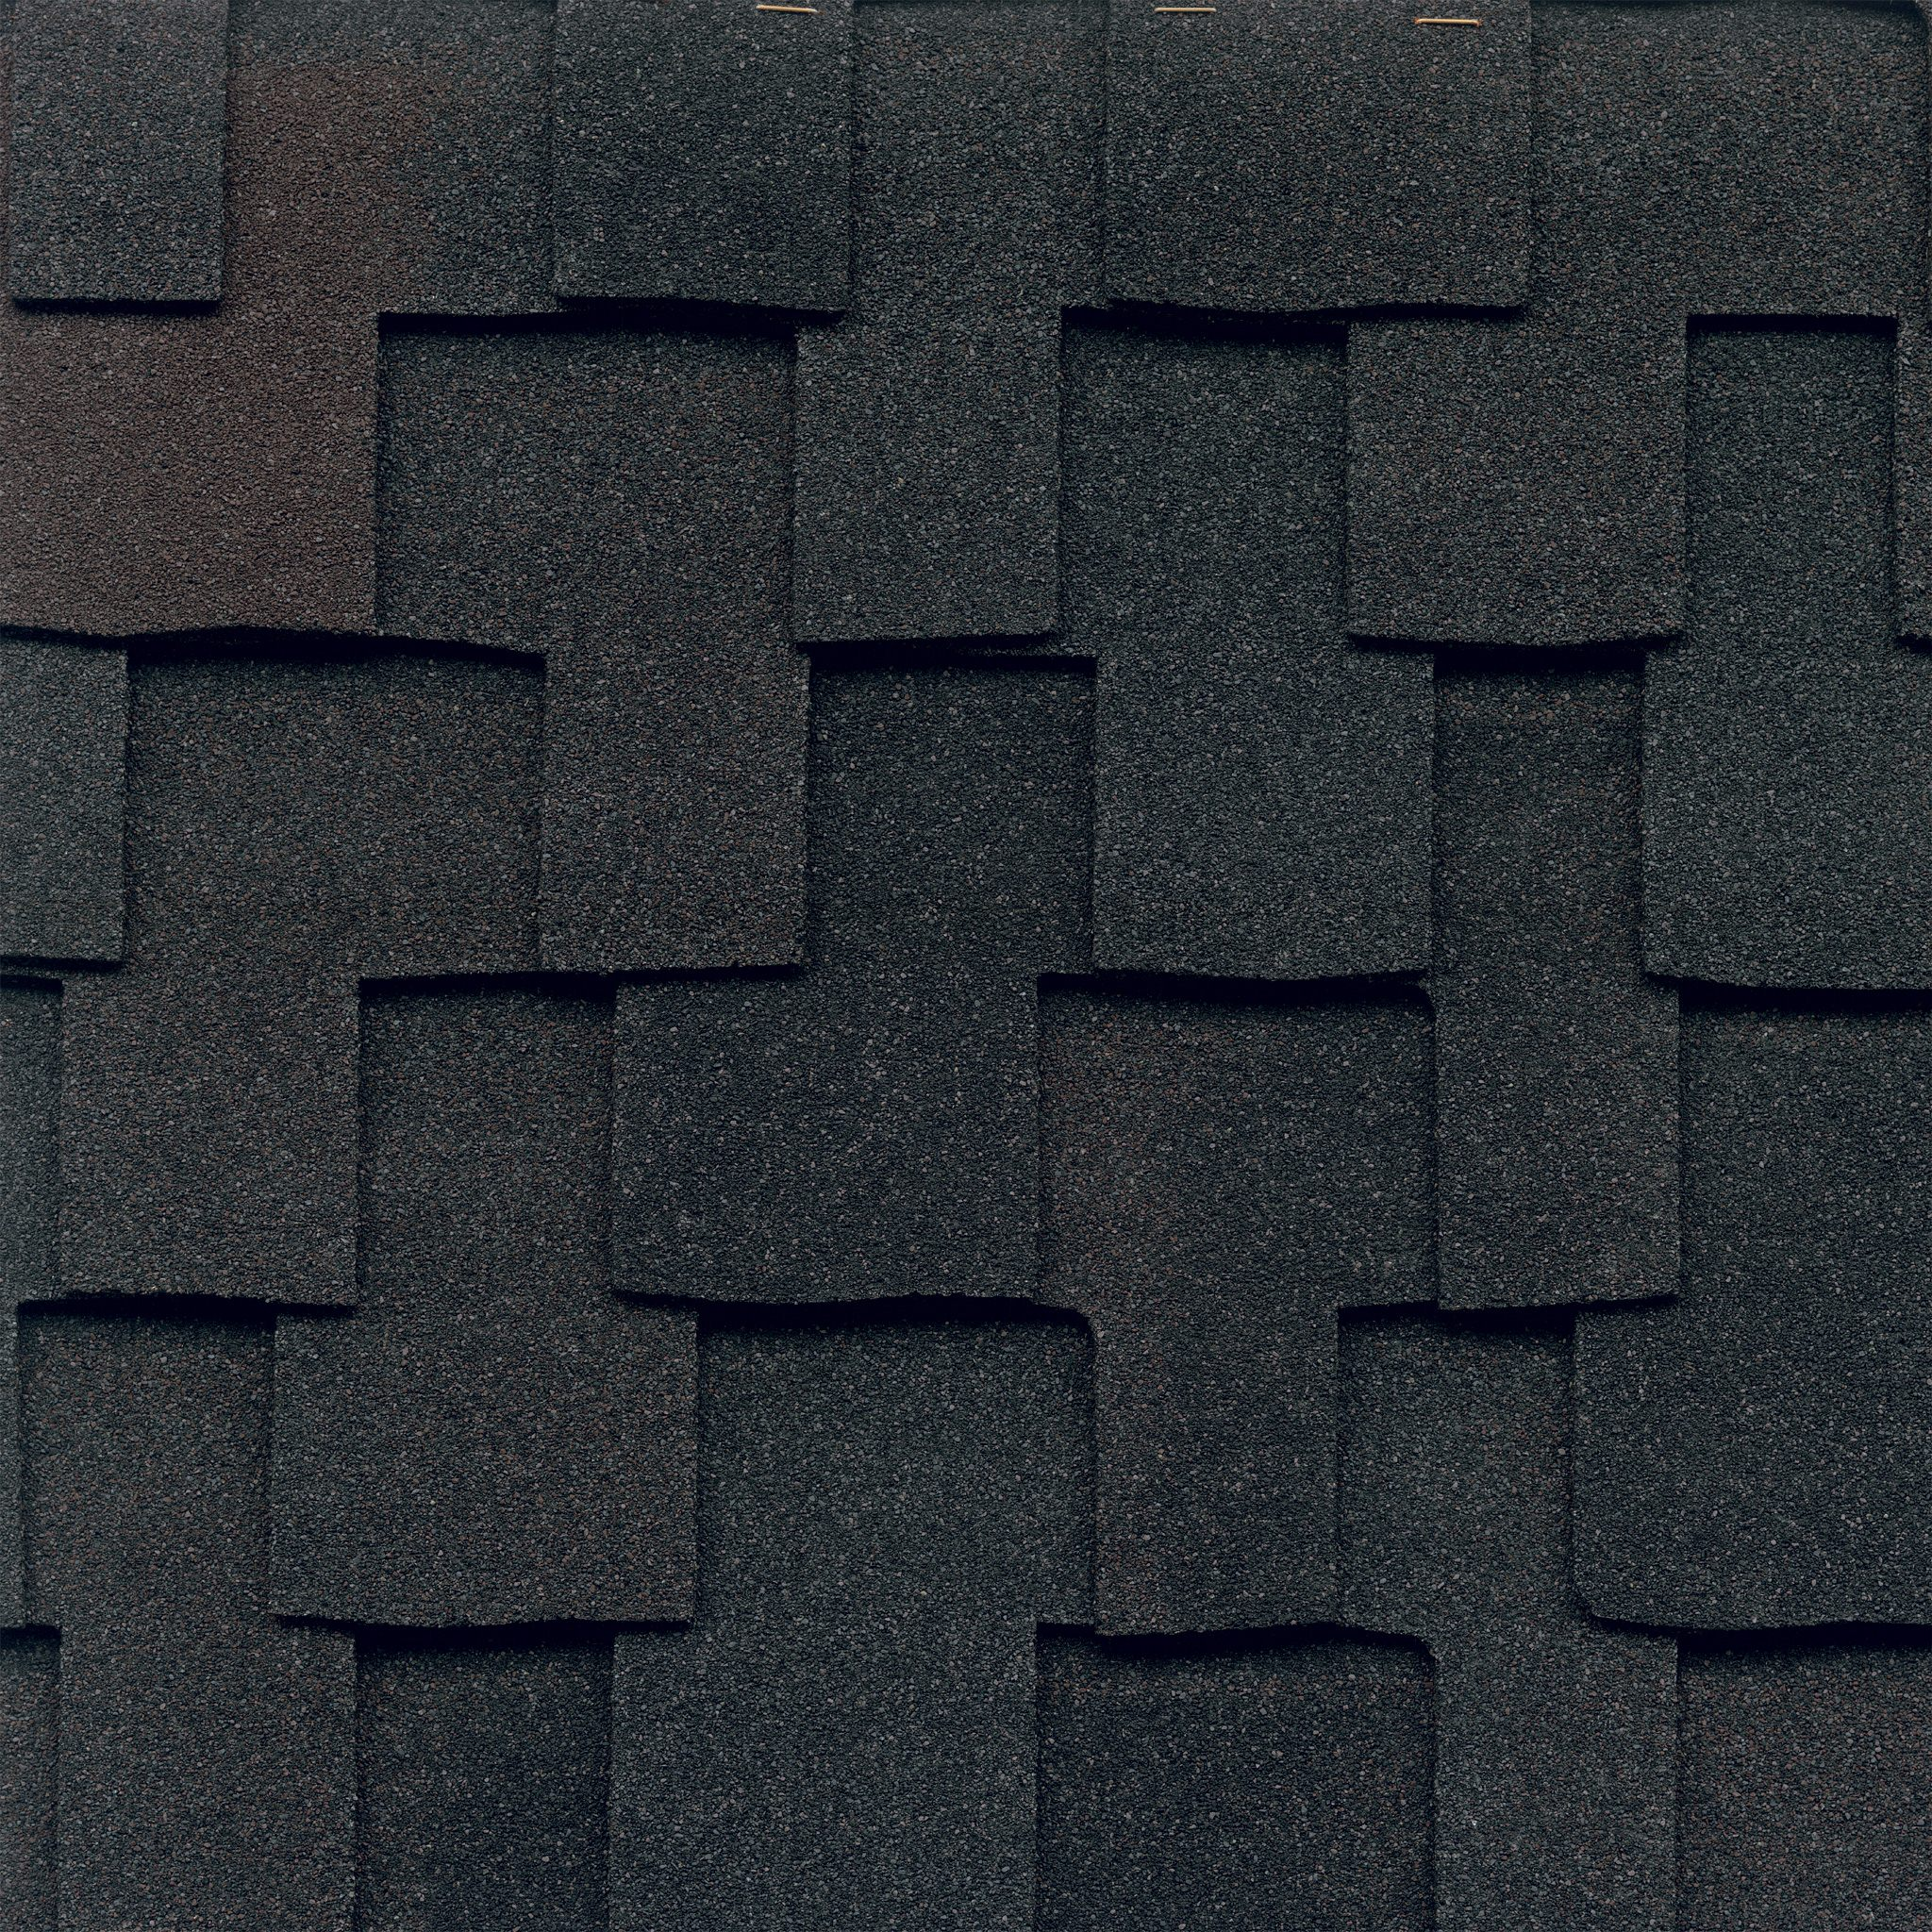 Close-up photo of GAF's Grand Canyon Black Oak shingle swatch